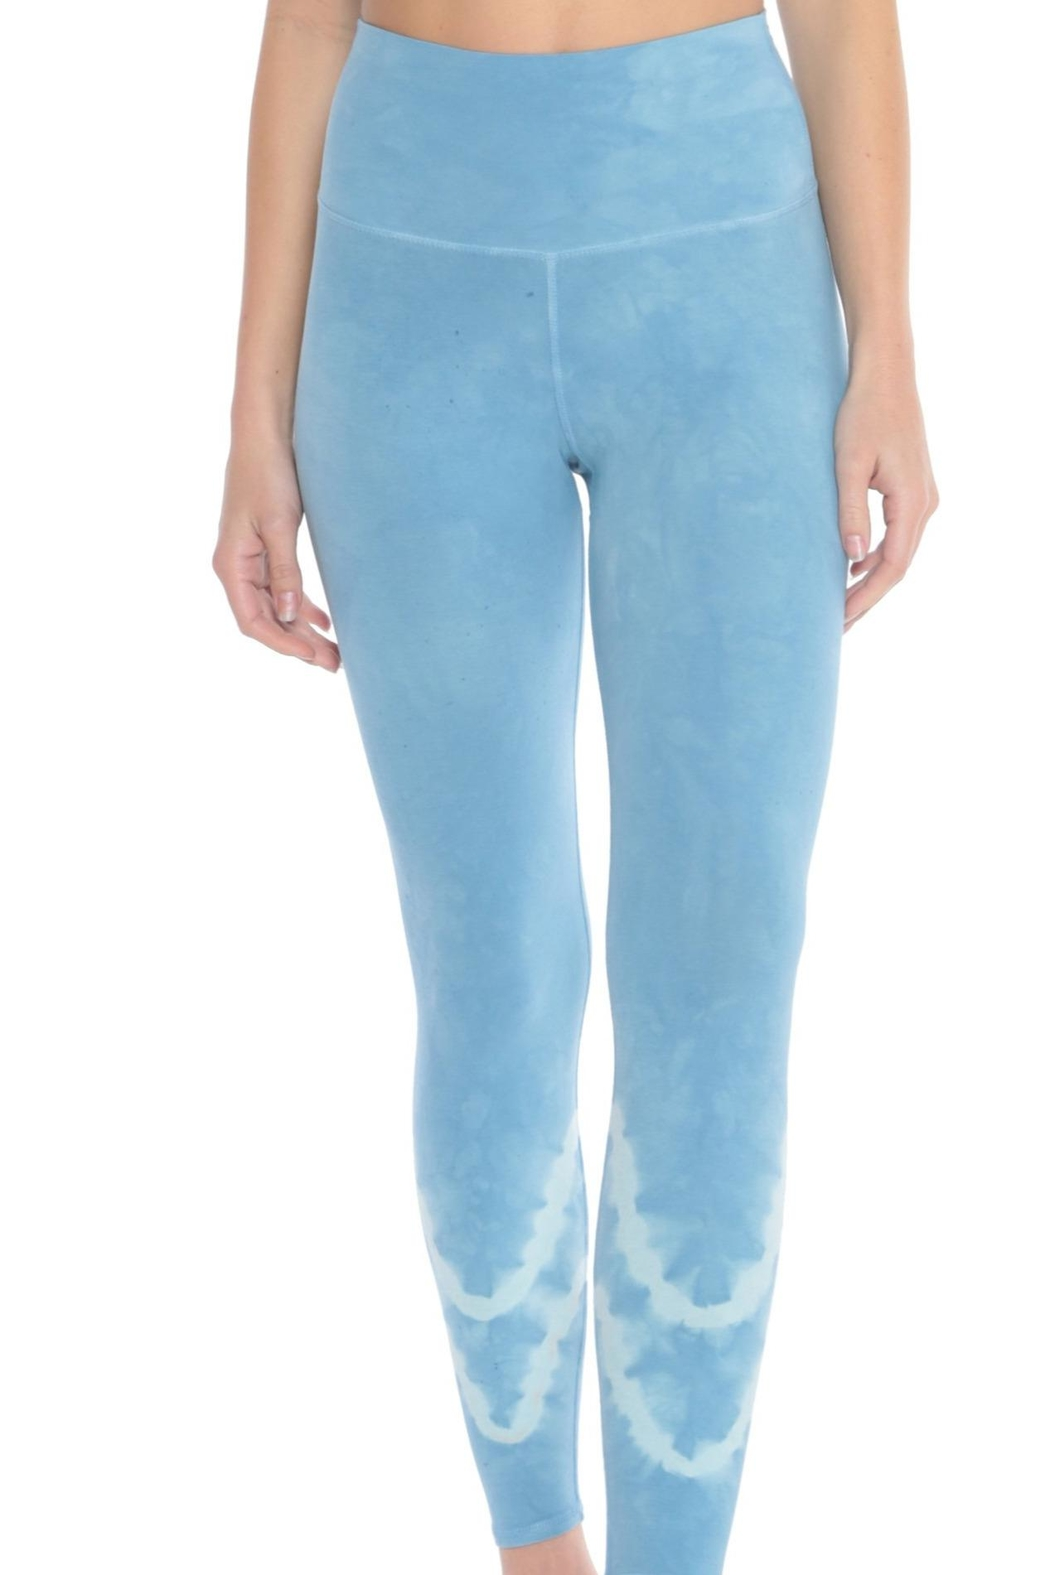 Electric & Rose Sunset Legging Pacific-Mist - Side Cropped Image